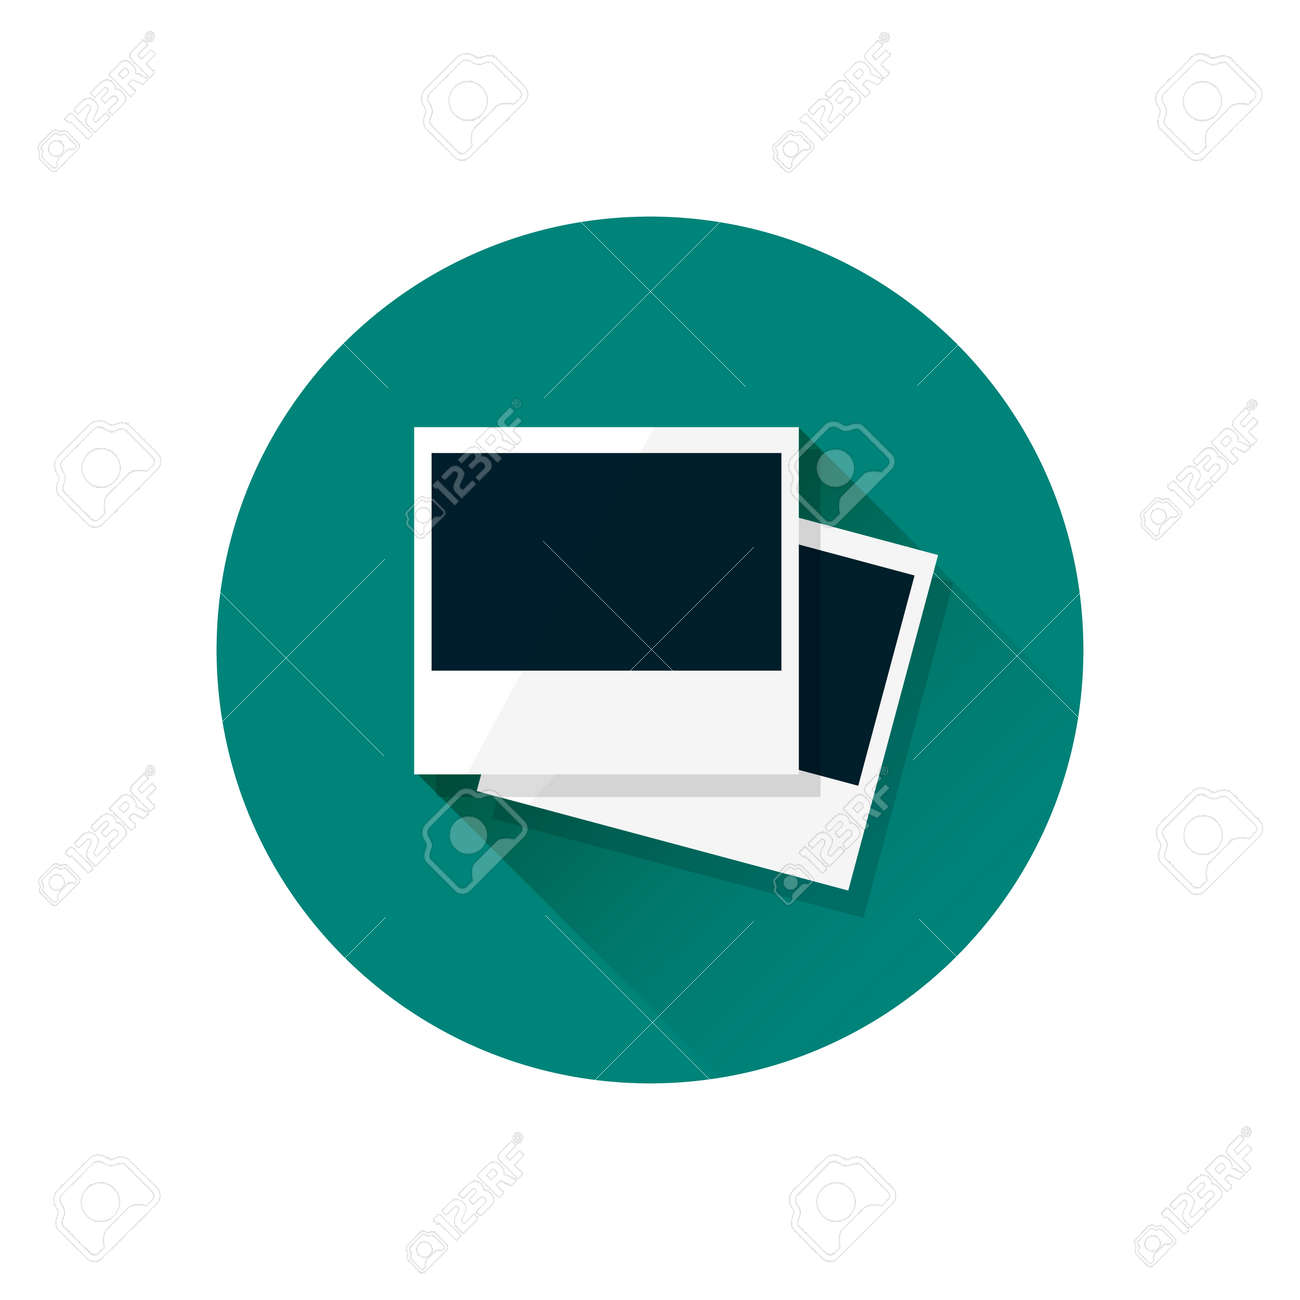 Blank retro polaroid photo frame illustration. Empty photo frames on green background. Modern flat design icon with long shadow effect in stylish colors. Icons for Web design and Mobile Application - 37830867